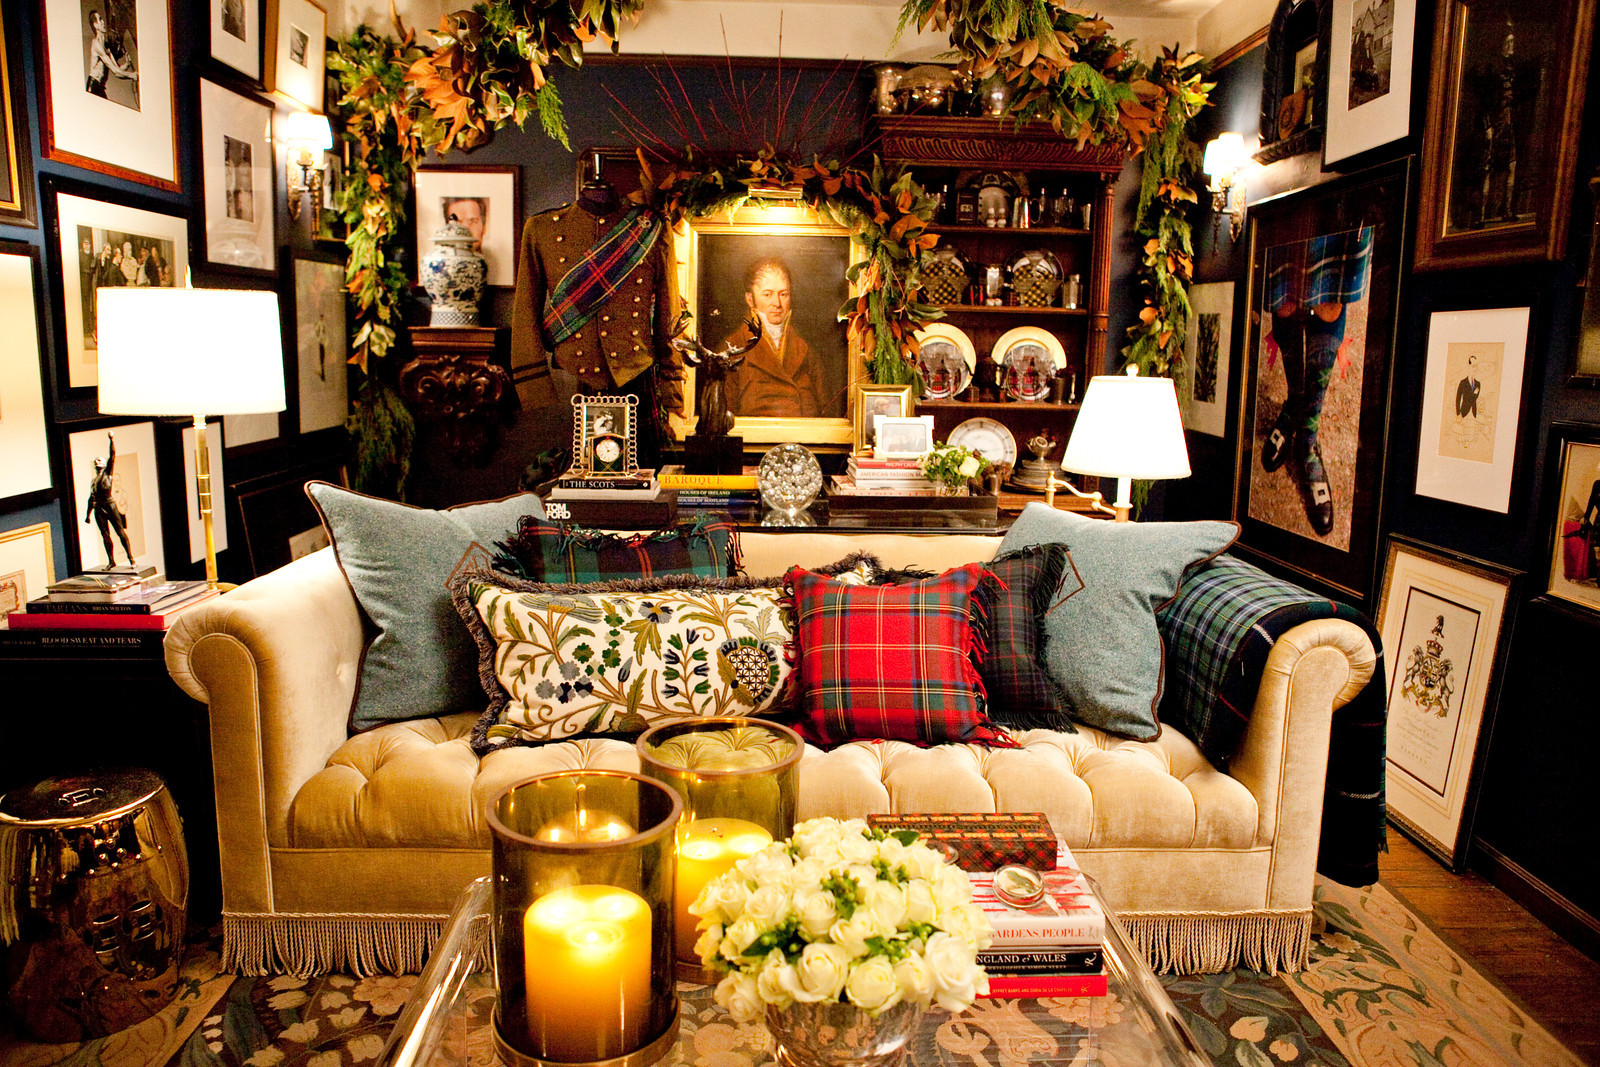 Scot Meacham Wood Design - Holiday 2011 - Living Room 3.jpg